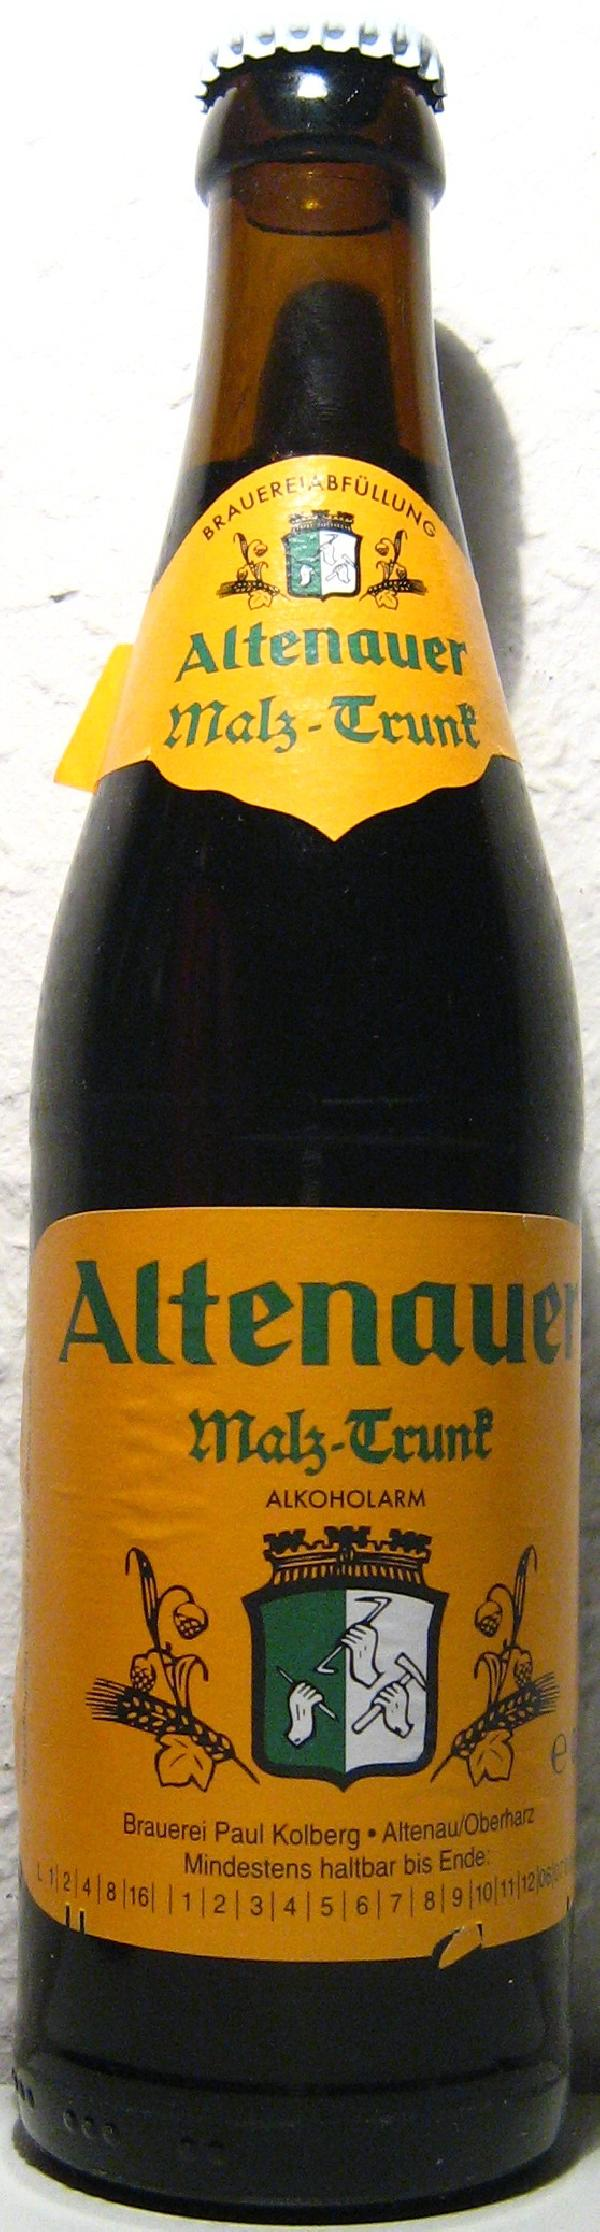 Altenauer Malz-Trunk